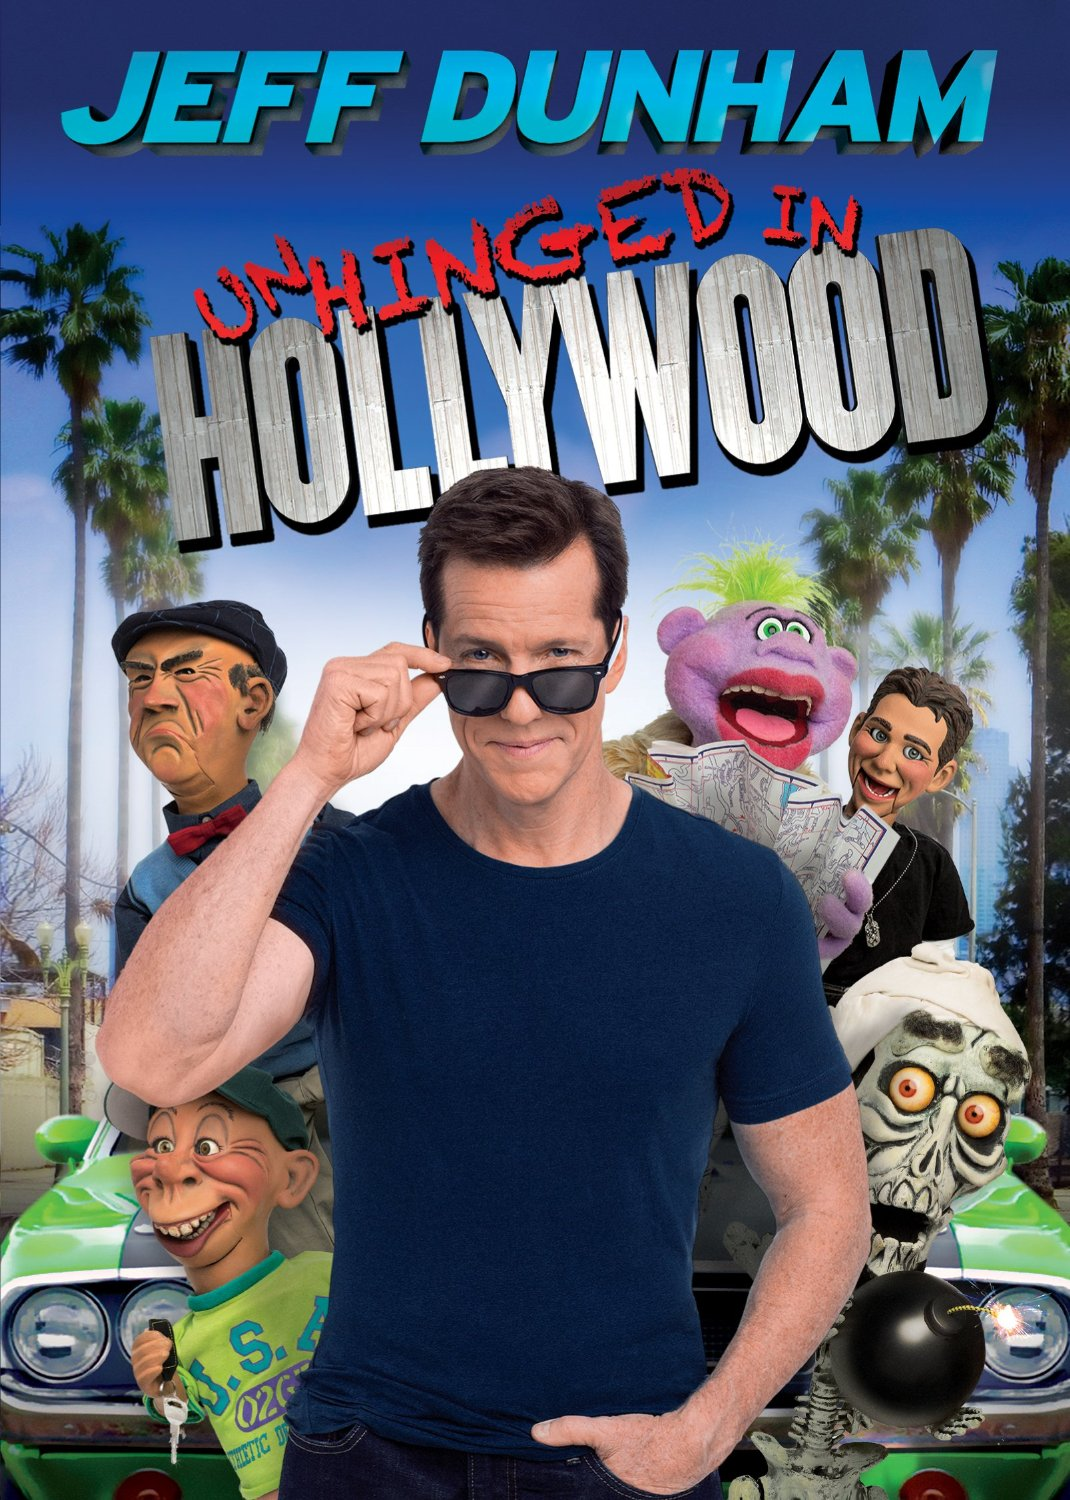 photo for Jeff Dunham's Unhinged in Hollywood